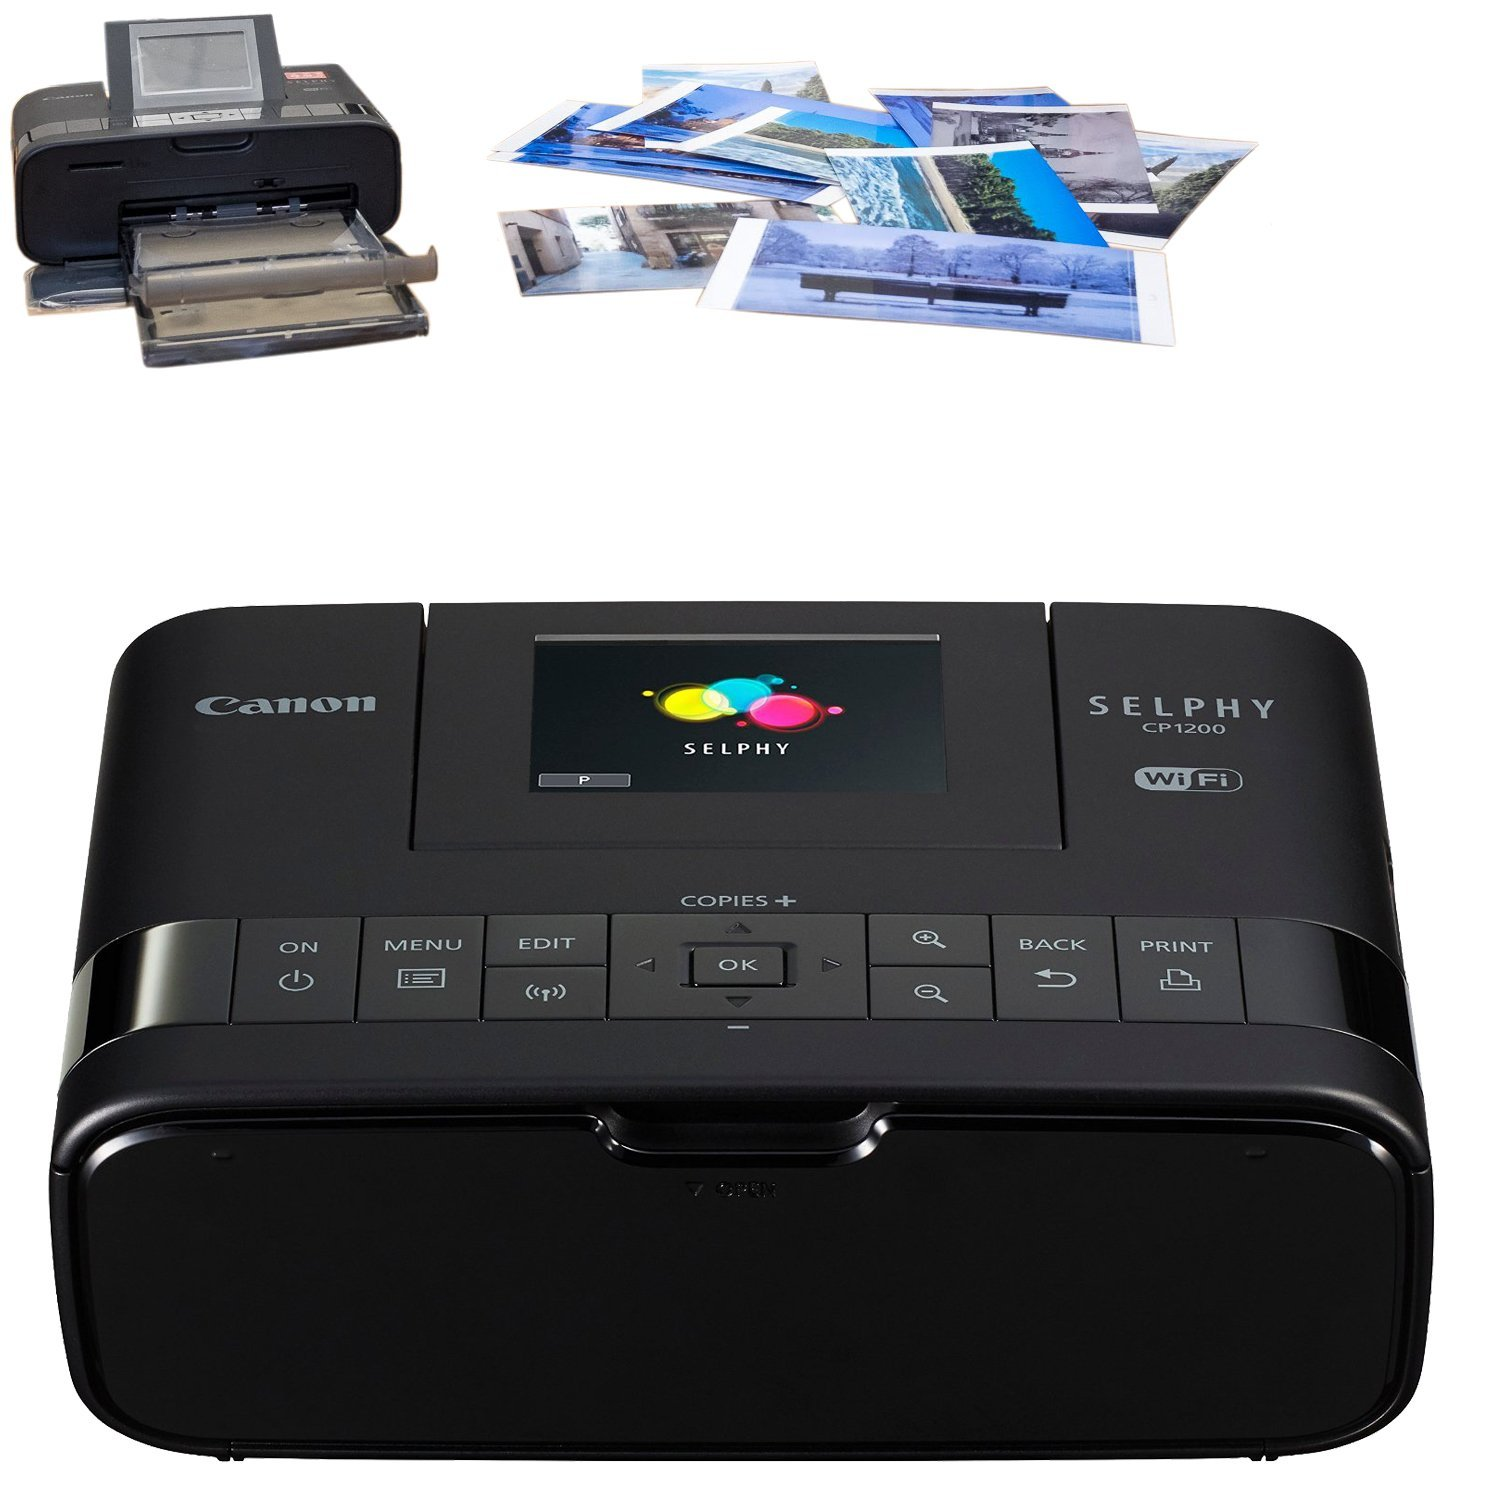 Canon Selphy CP1200 Wireless Color Photo Printer (Black) + USB Printer Cable + HeroFiber Ultra Gentle Cleaning Cloth by HeroFiber (Image #3)